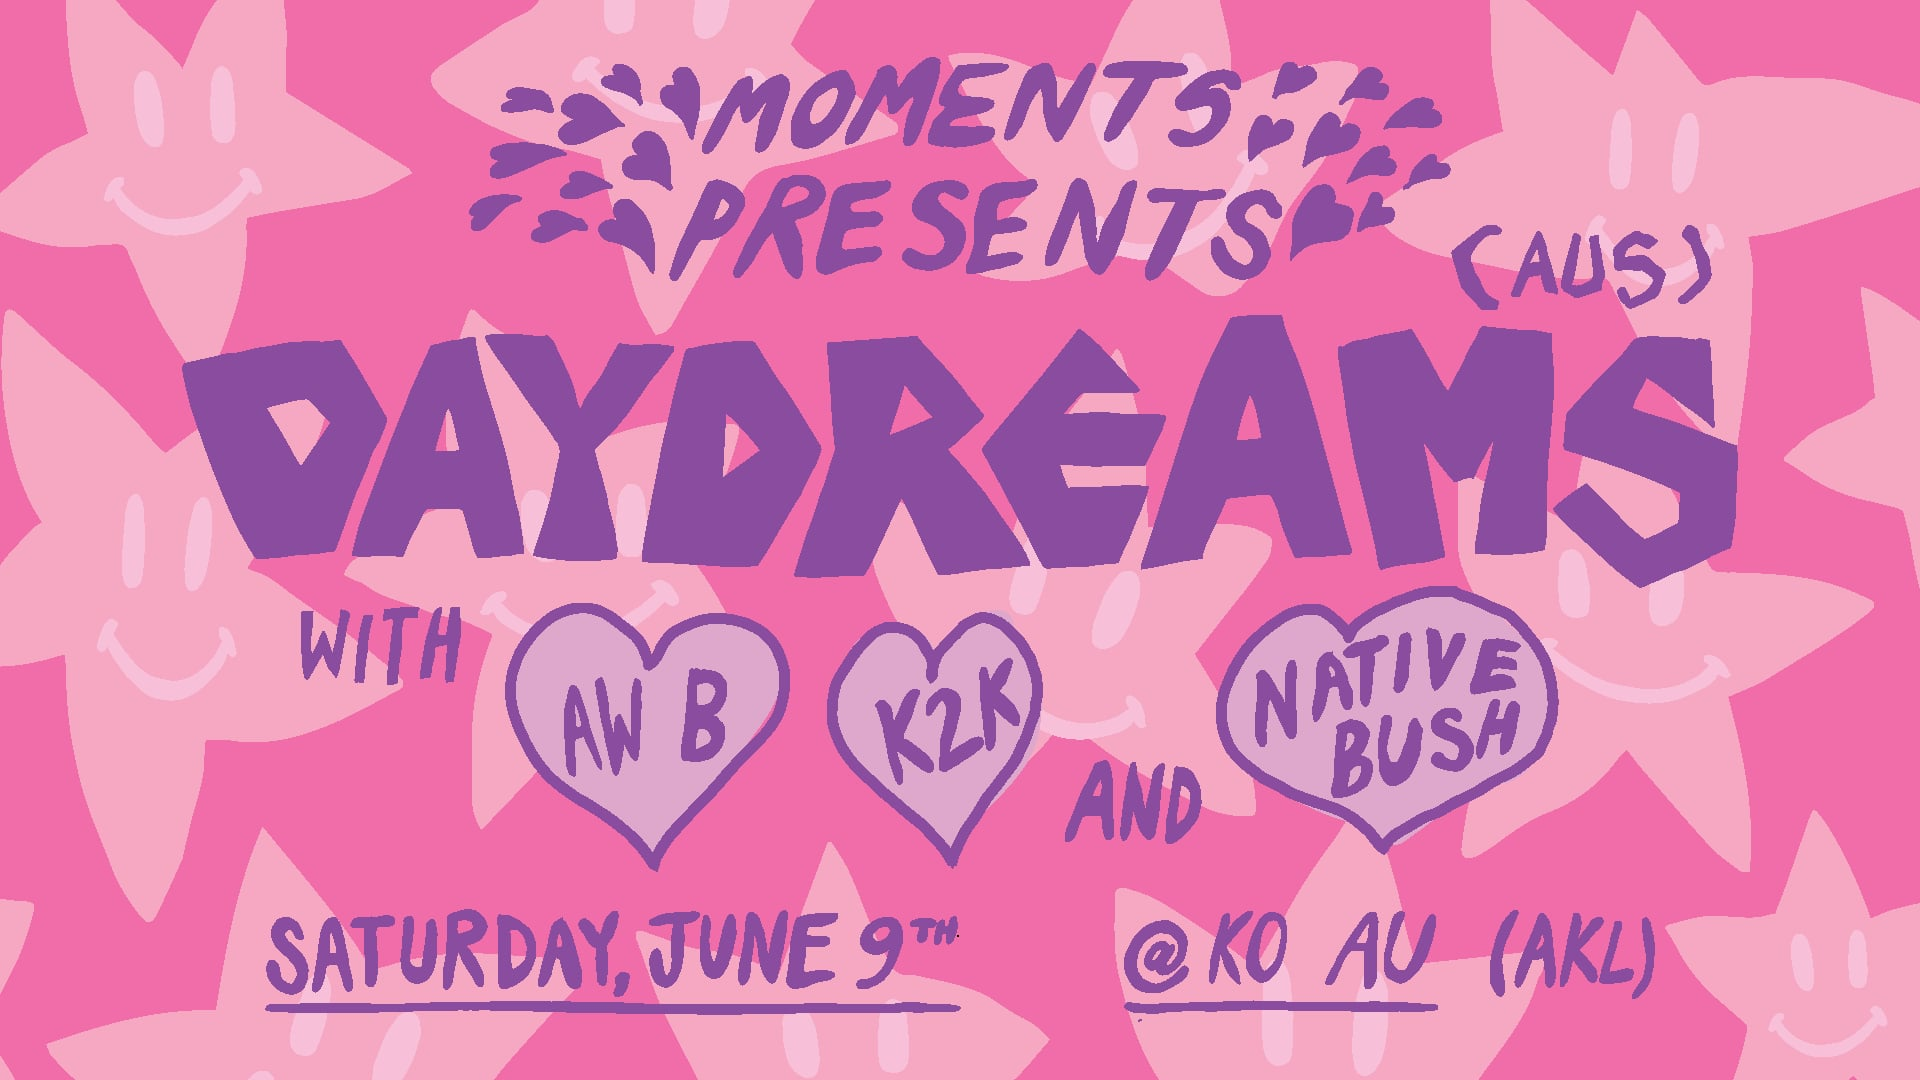 Daydreams with K2k, Native Bush and Aw B